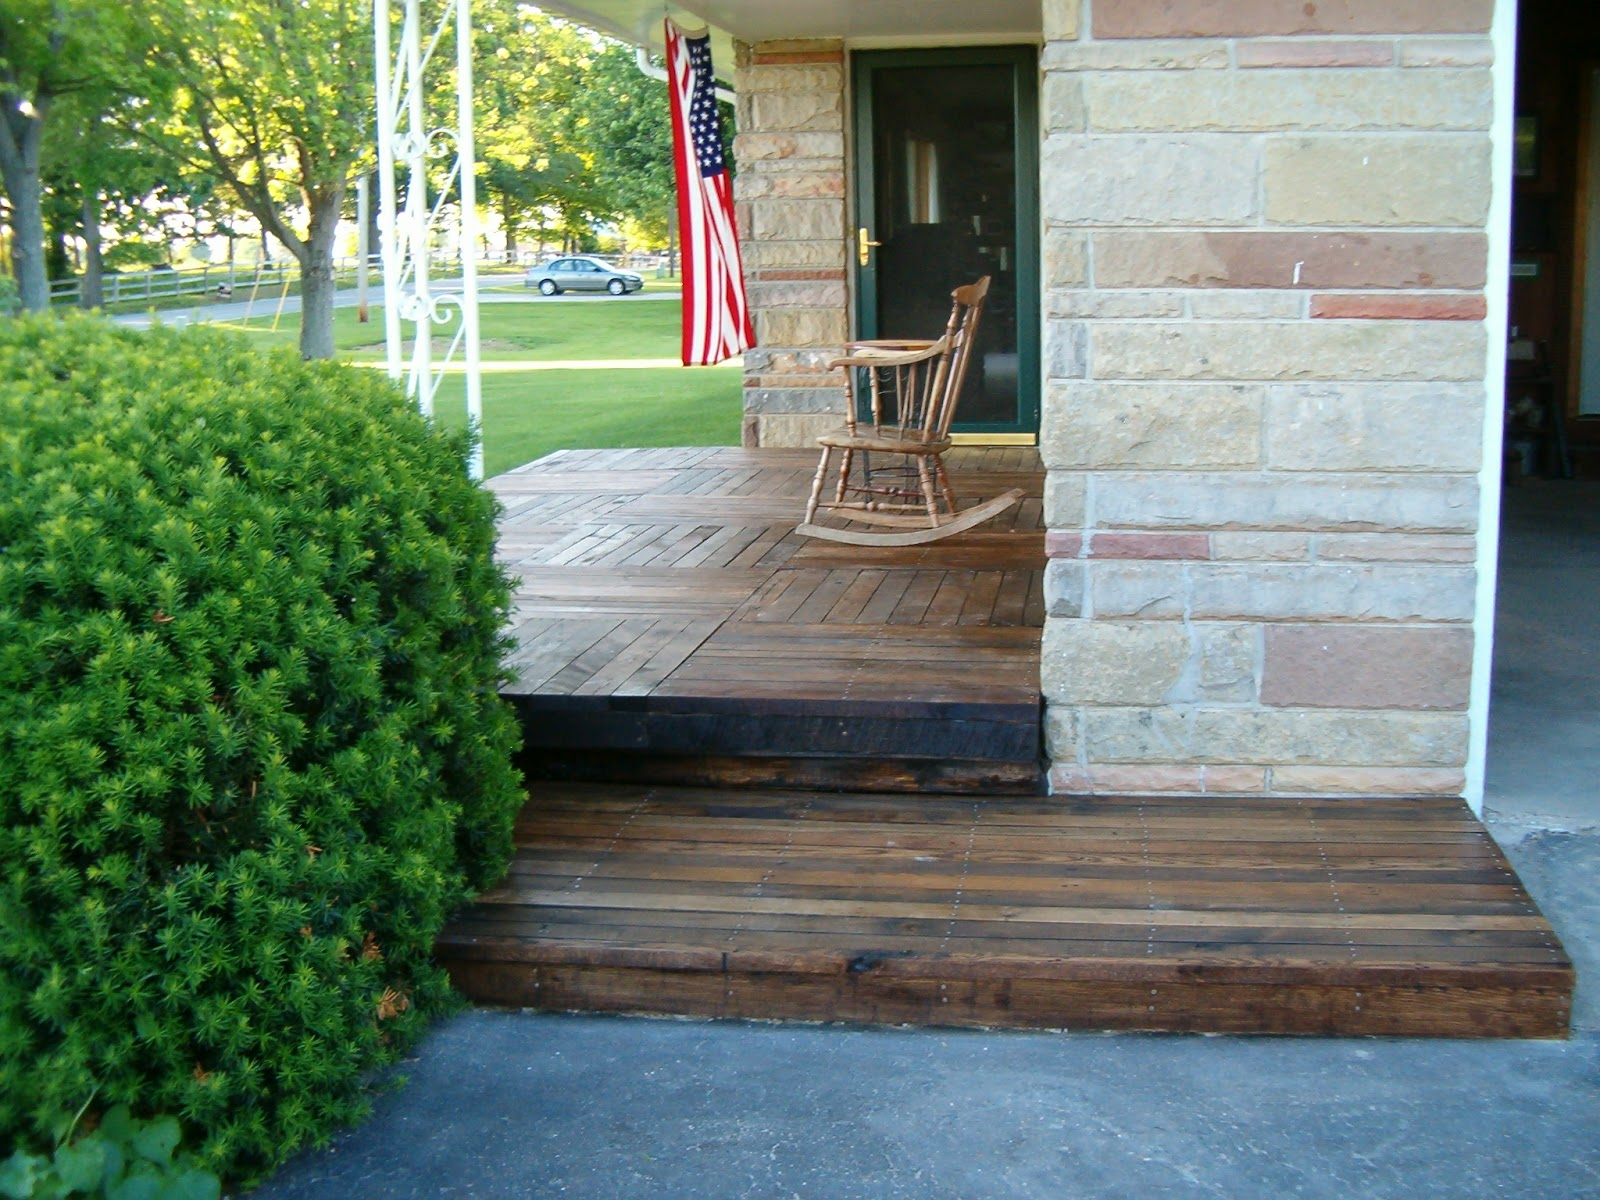 Redo redux revisiting past projects pallet wood front porch solutioingenieria Image collections